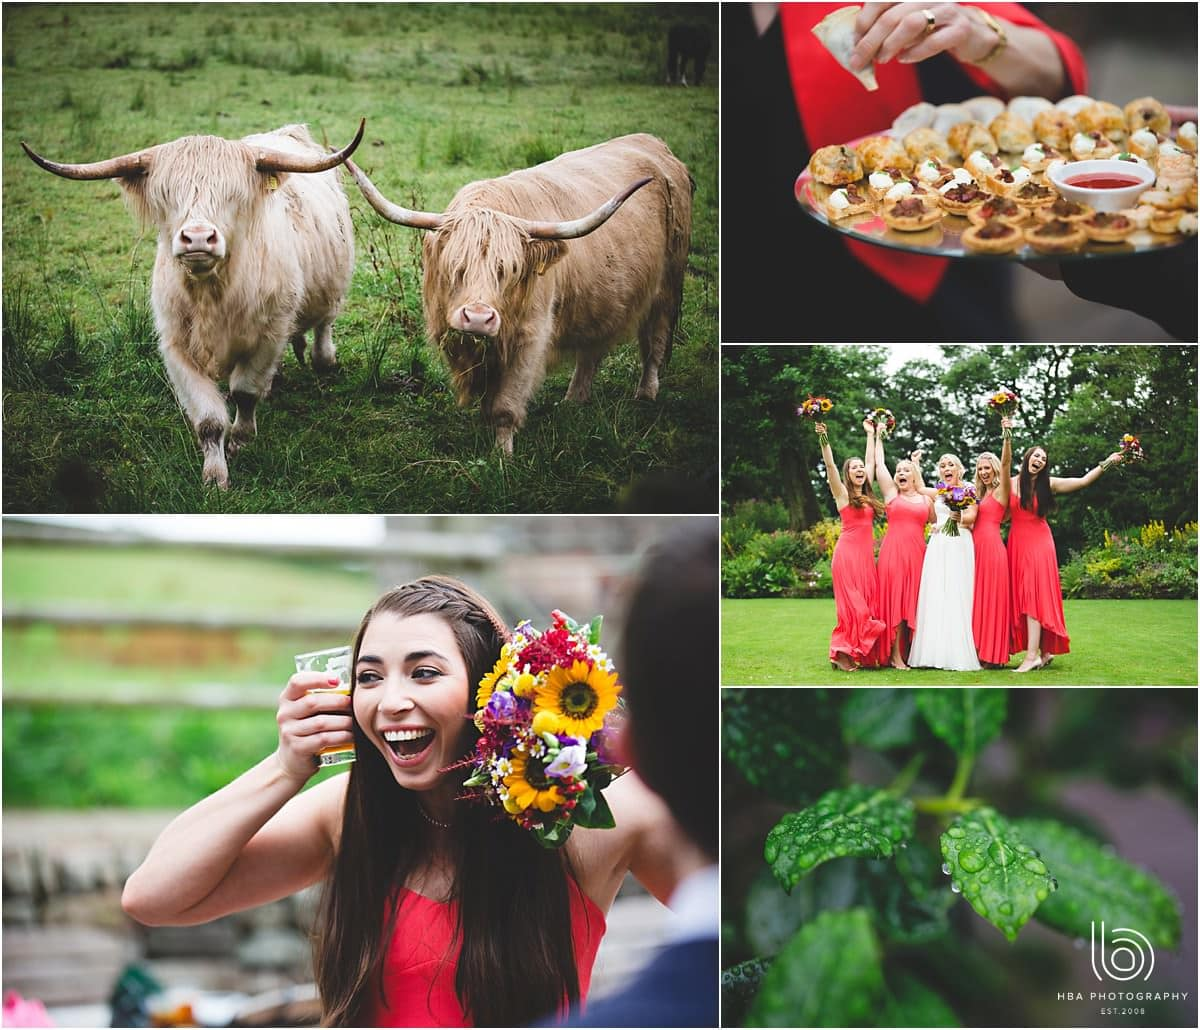 he highland cows and bridesmaids